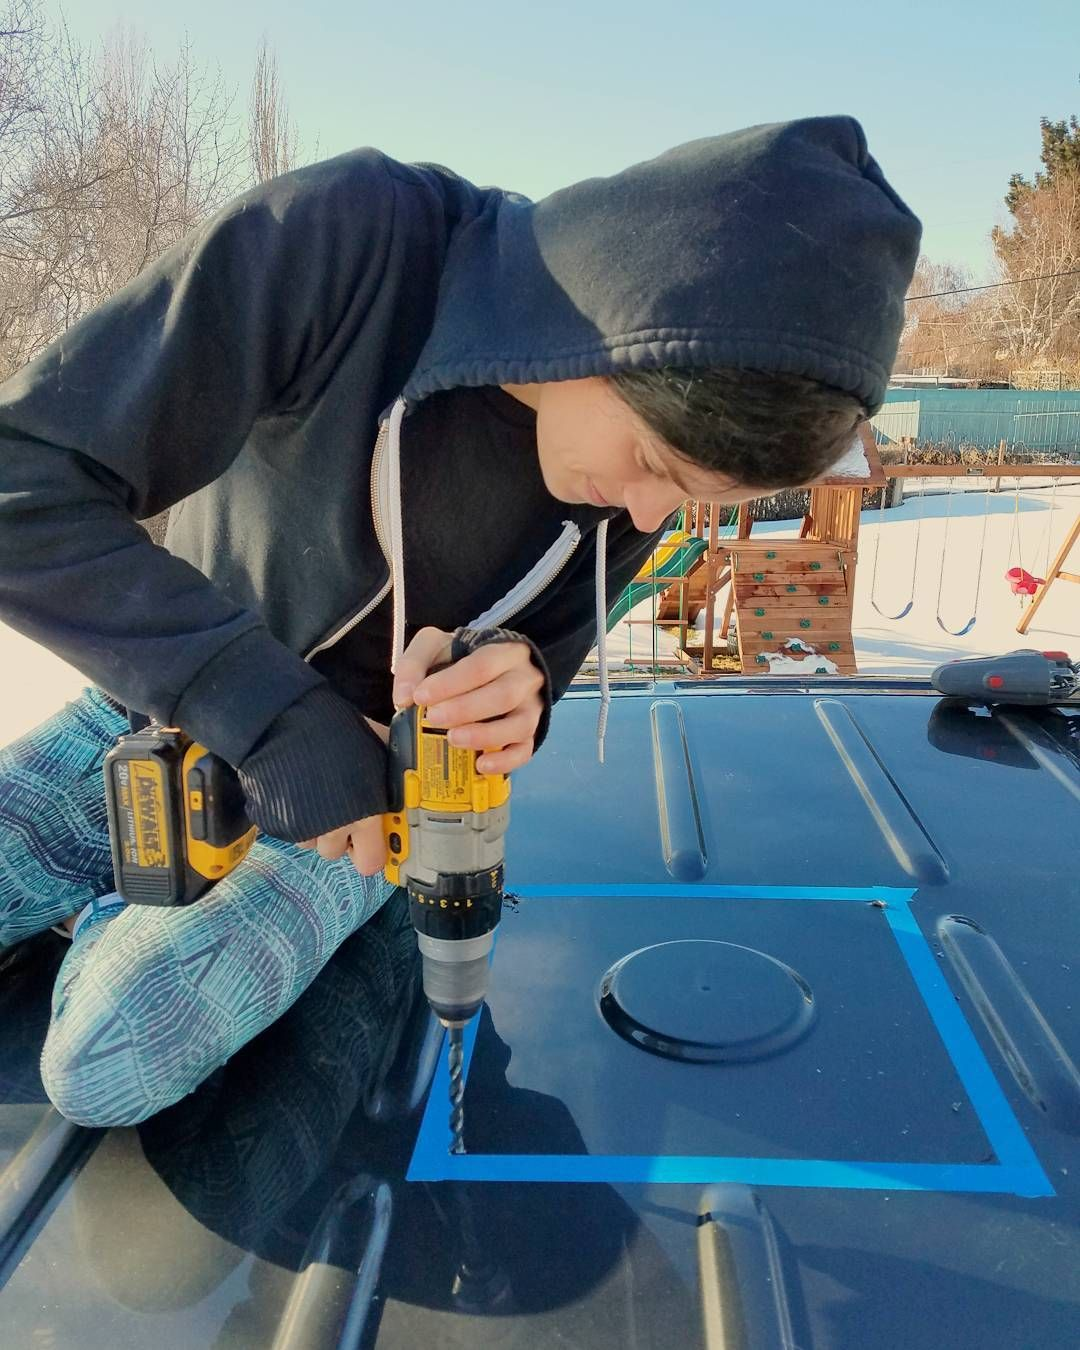 These Easy To Follow Instructions Guide You Through How To Install A 12V Roof Vent Fan In Your